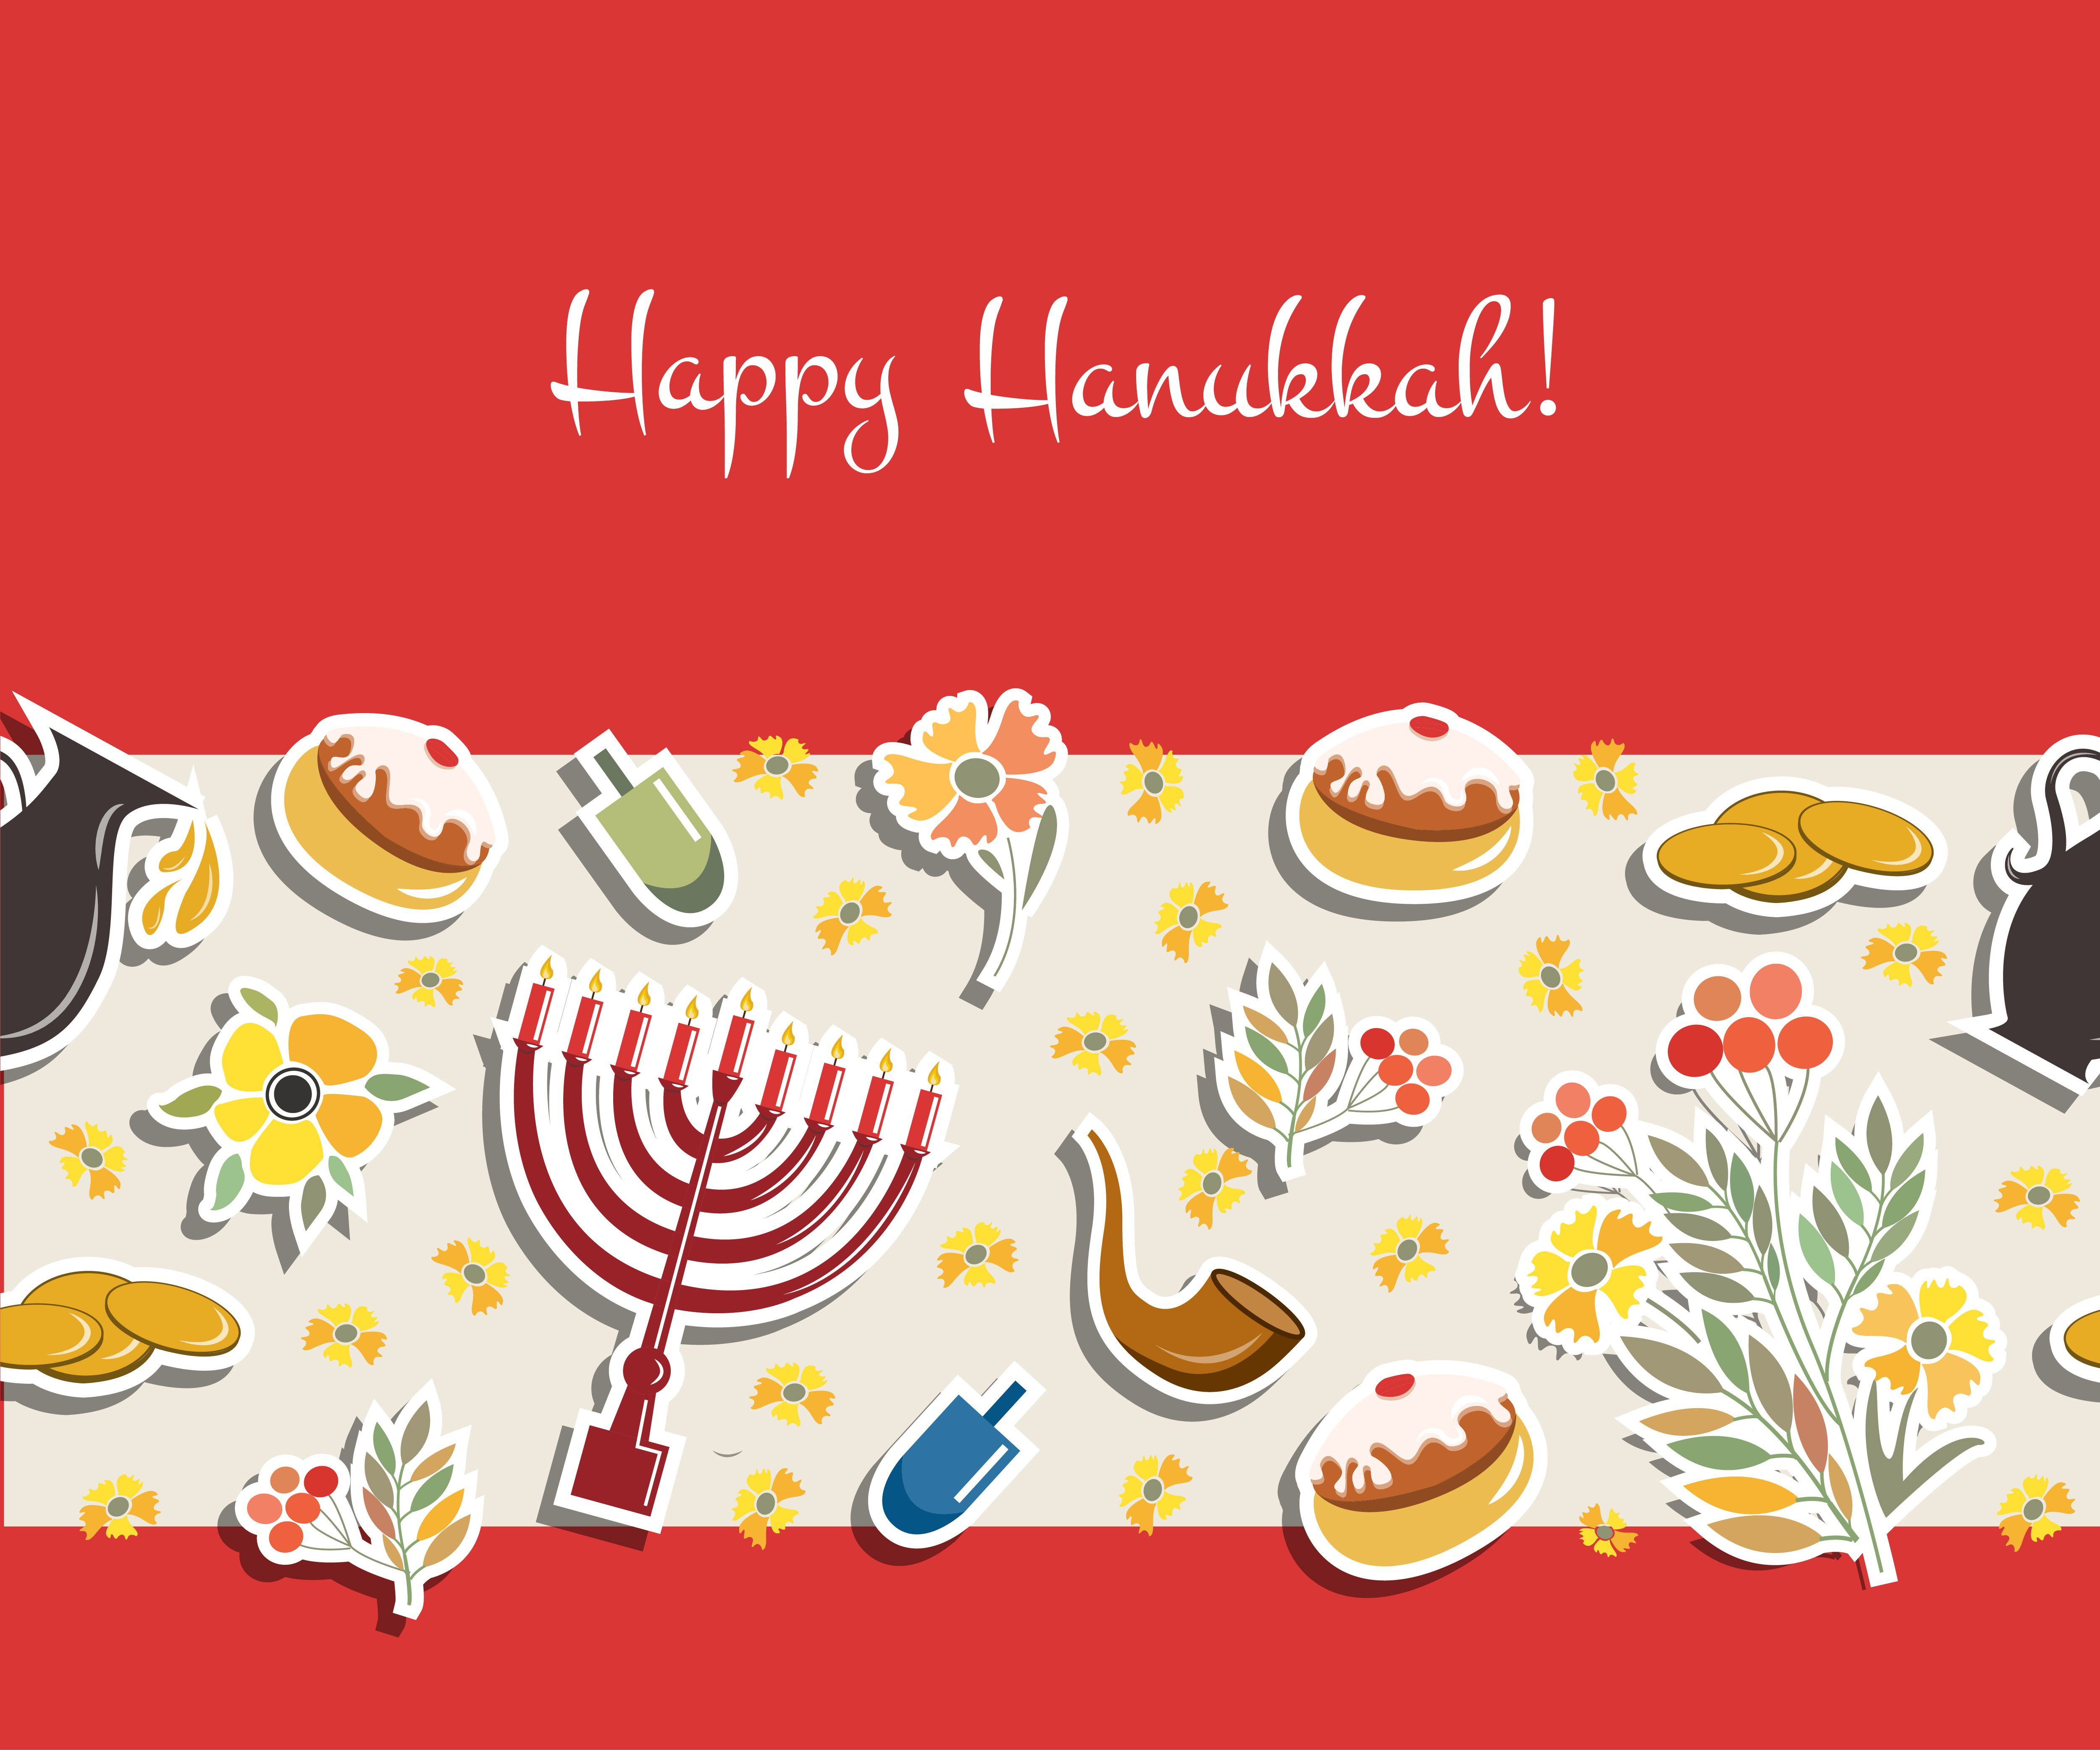 Happy Hanukkah Card By Alps View Art On Creative Market Hanukkah